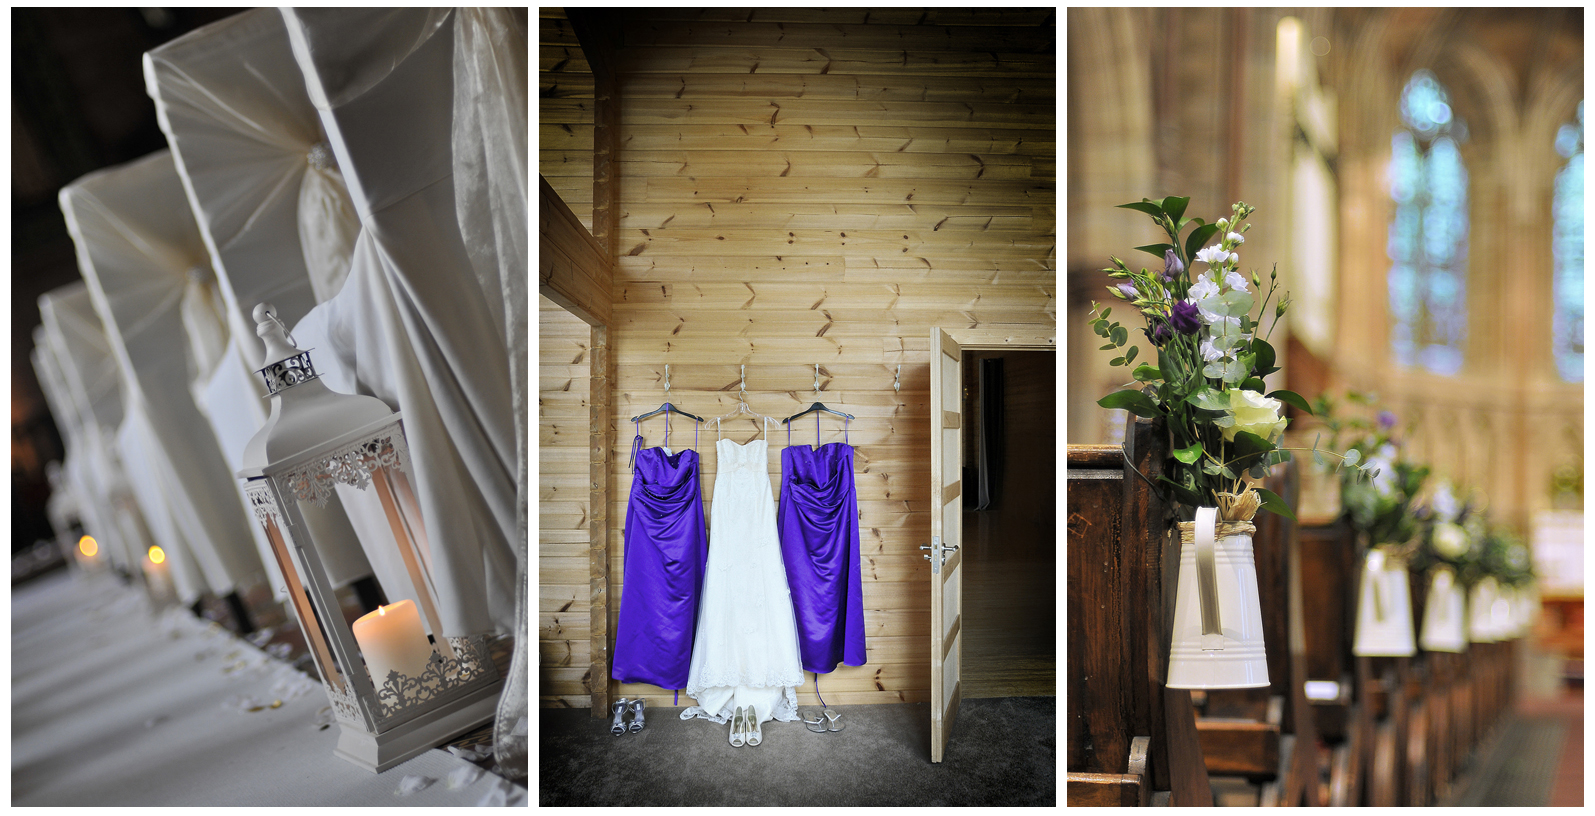 Dresses, lights and flowers